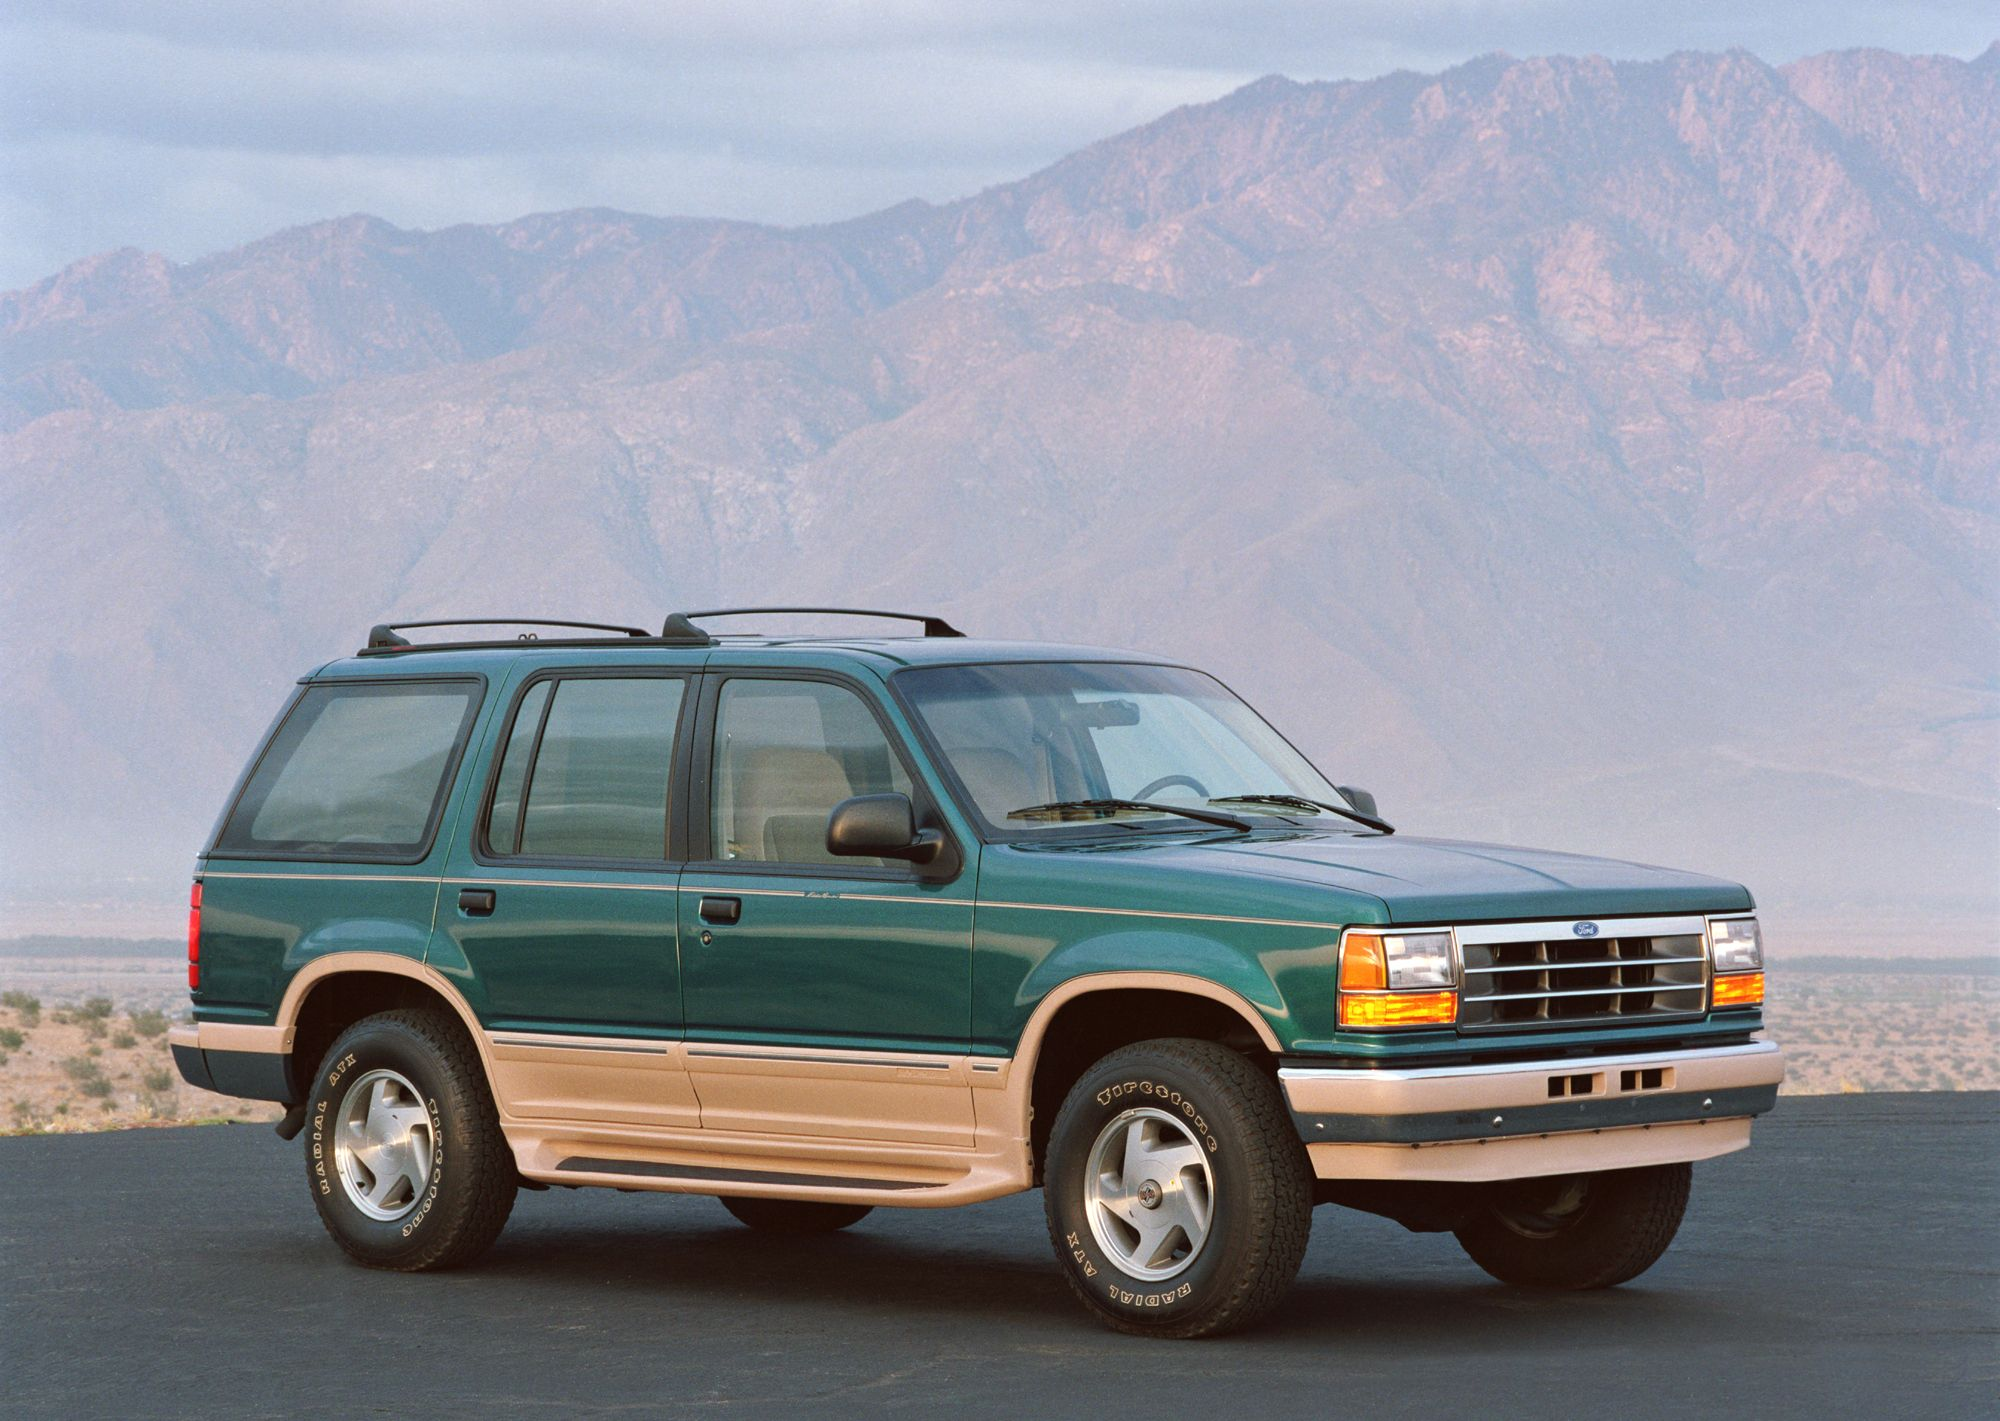 The History Of The Ford Explorer From 1990 To Today